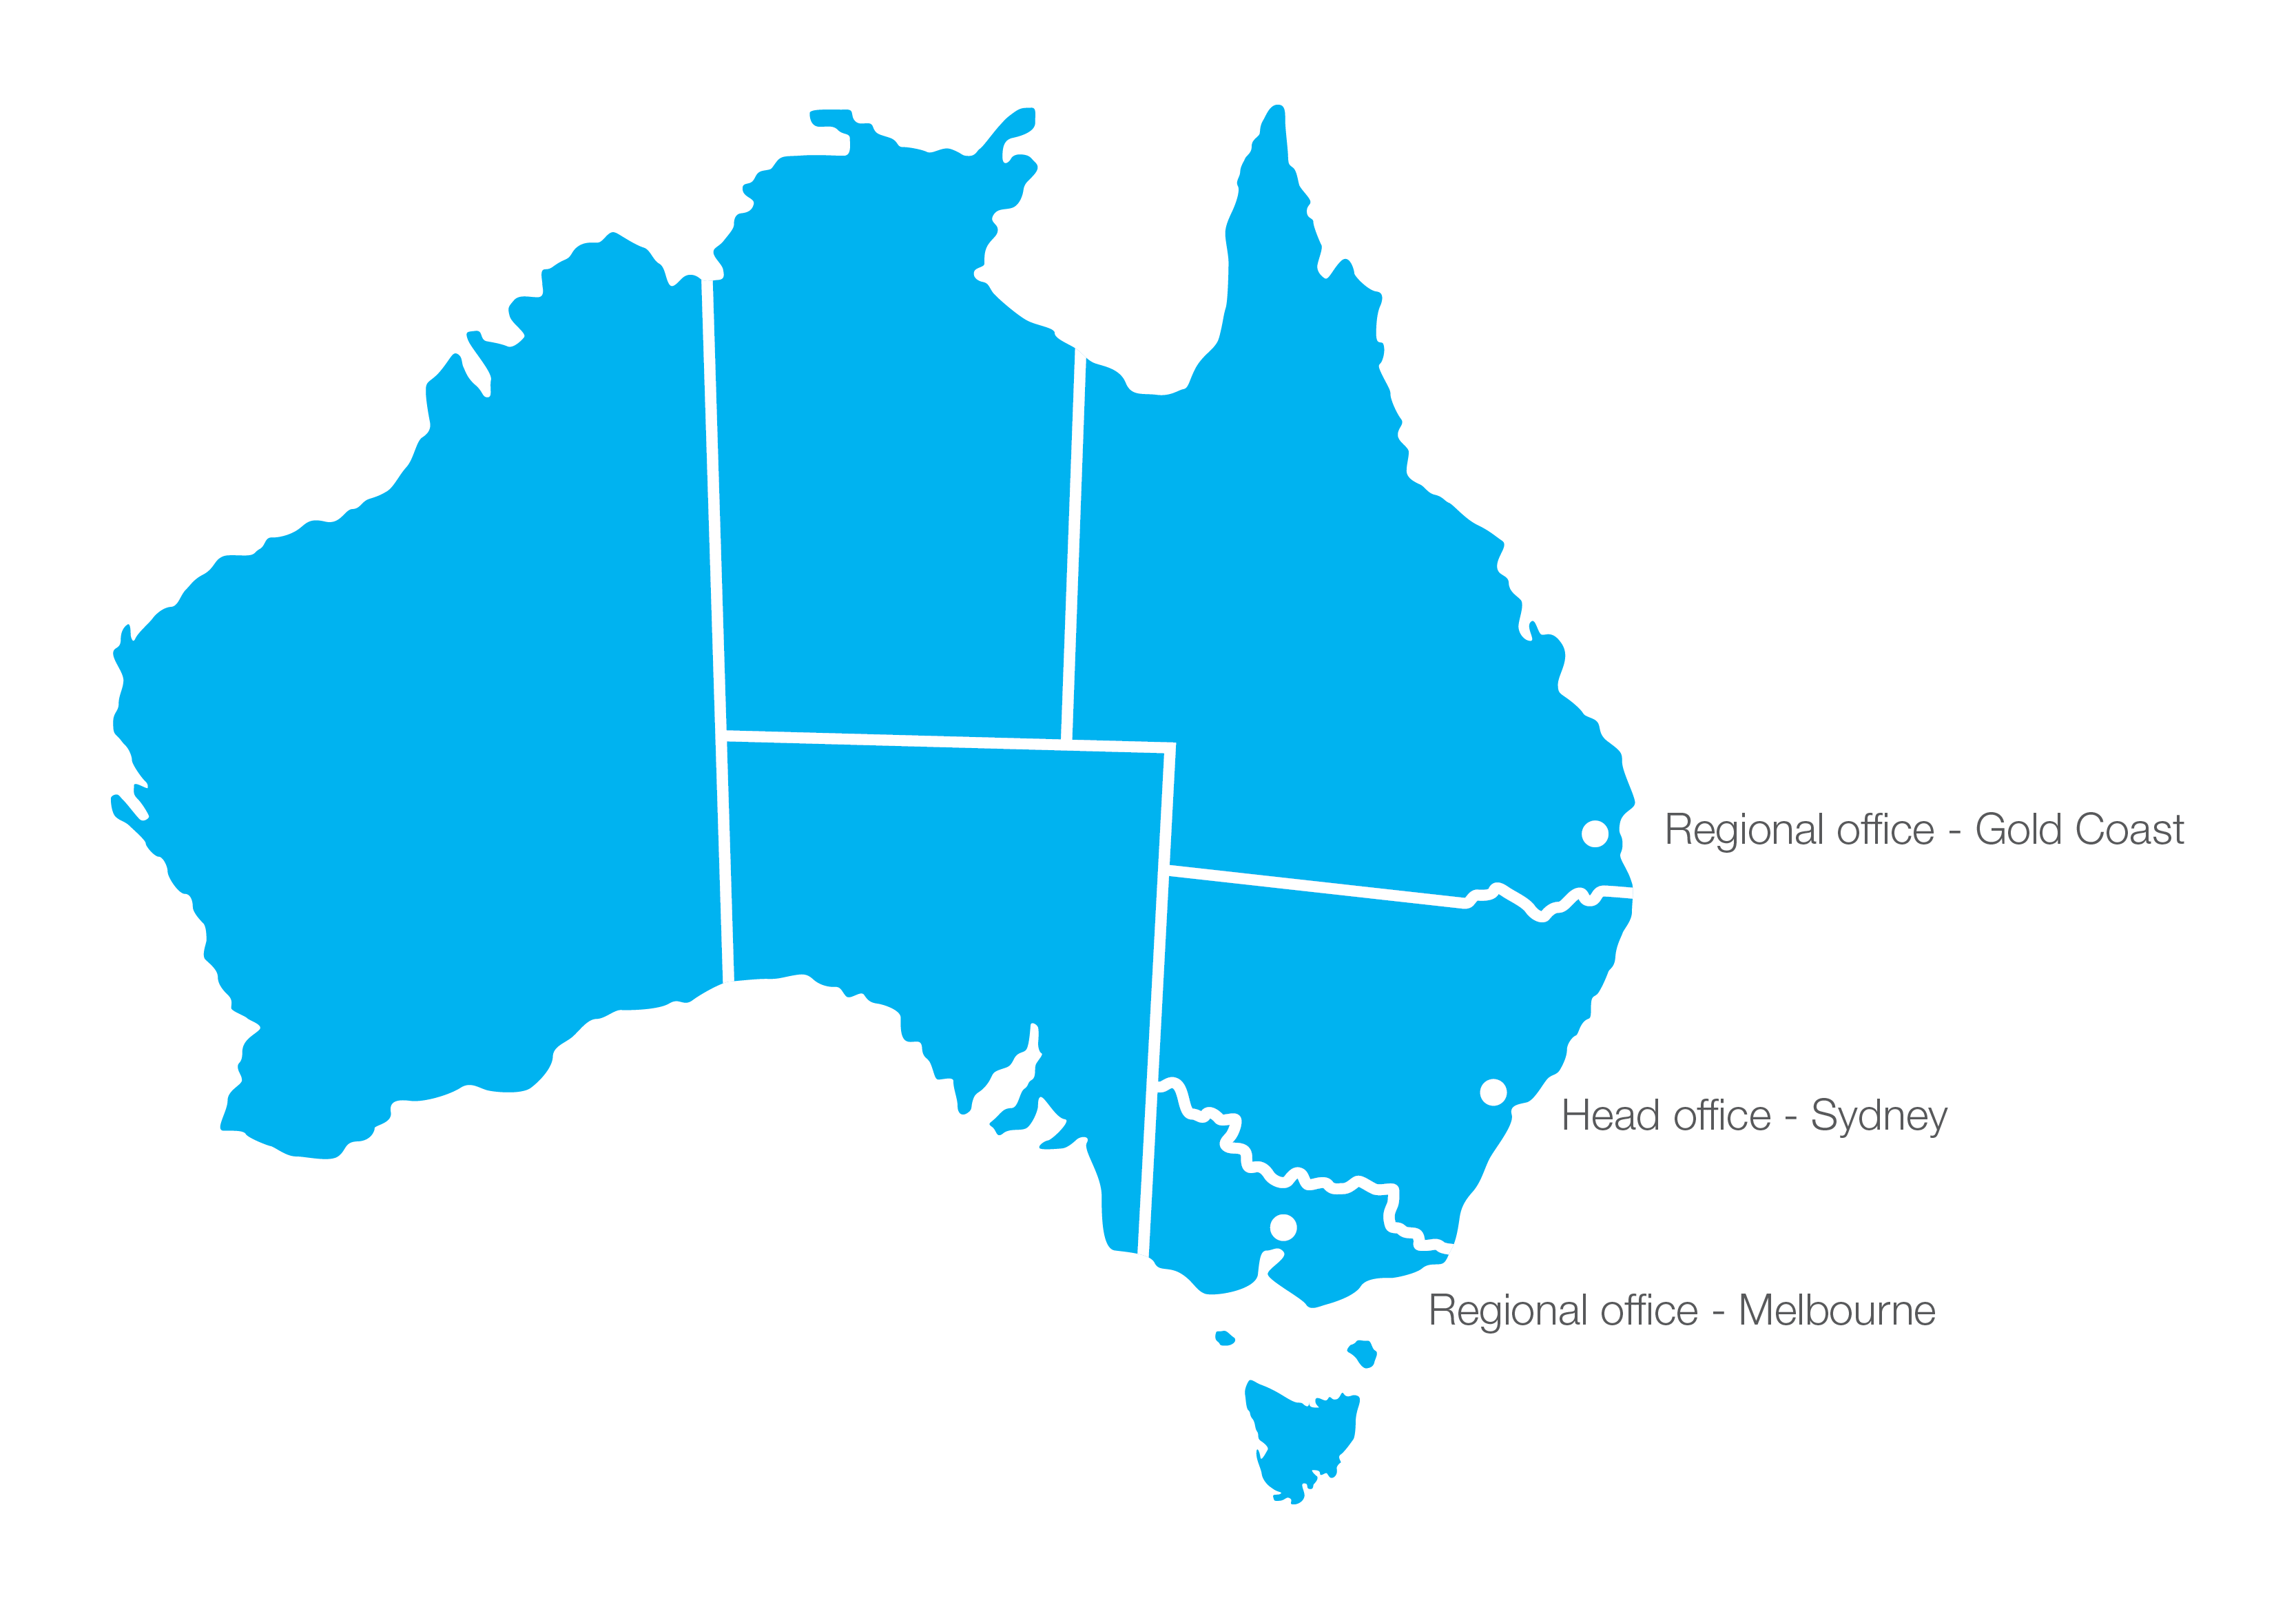 National reach local presence graphic